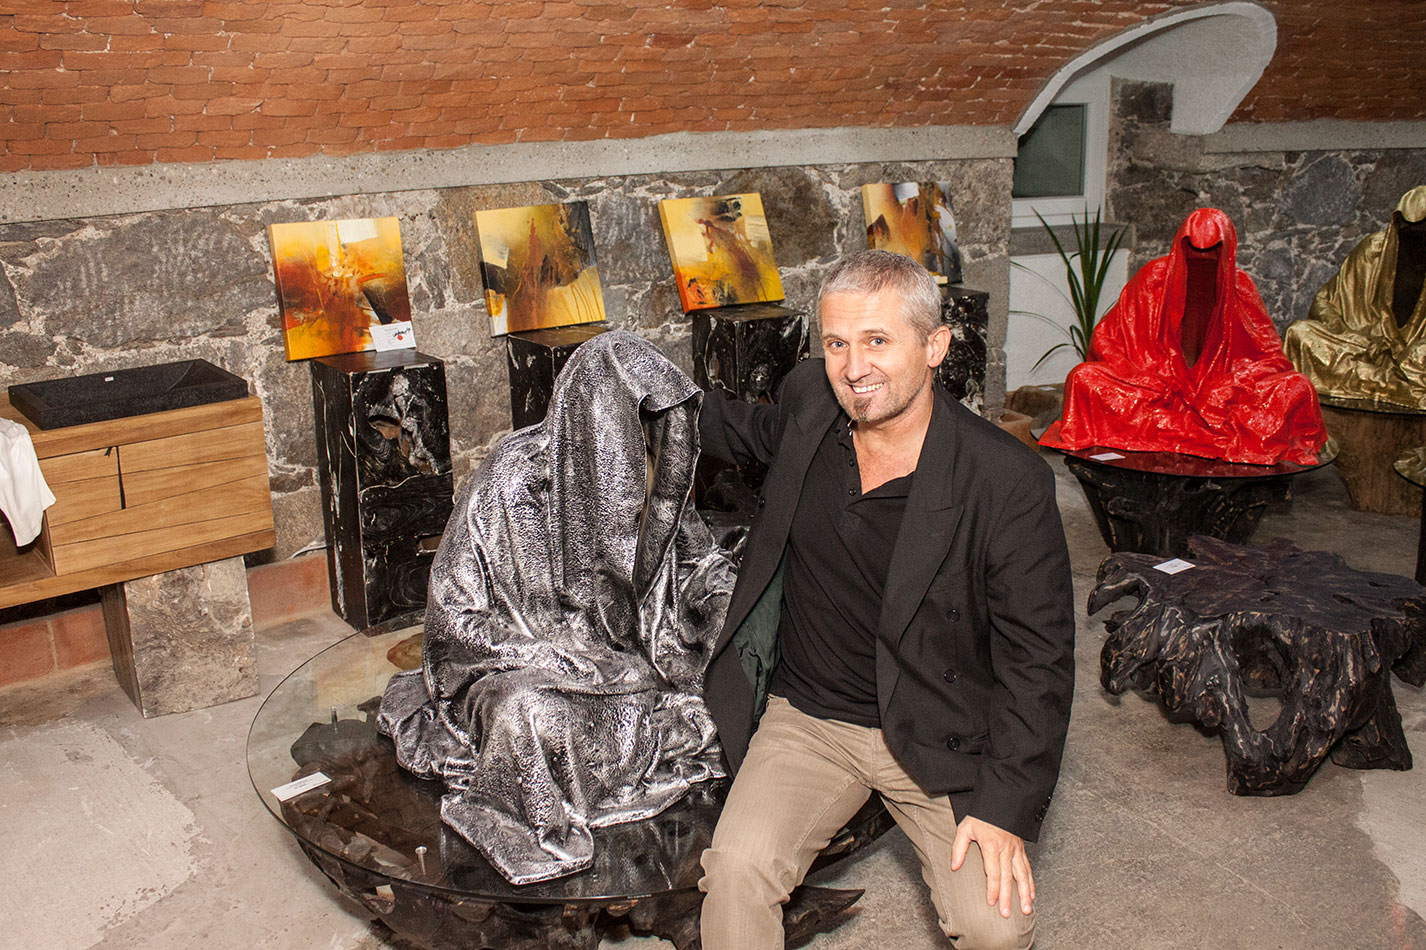 mobile-galerie-gall-toko06-linz-25er-turm-guardians-of-time-manfred-kielnhofer-contemporary-fine-art-design-sculpture-2673